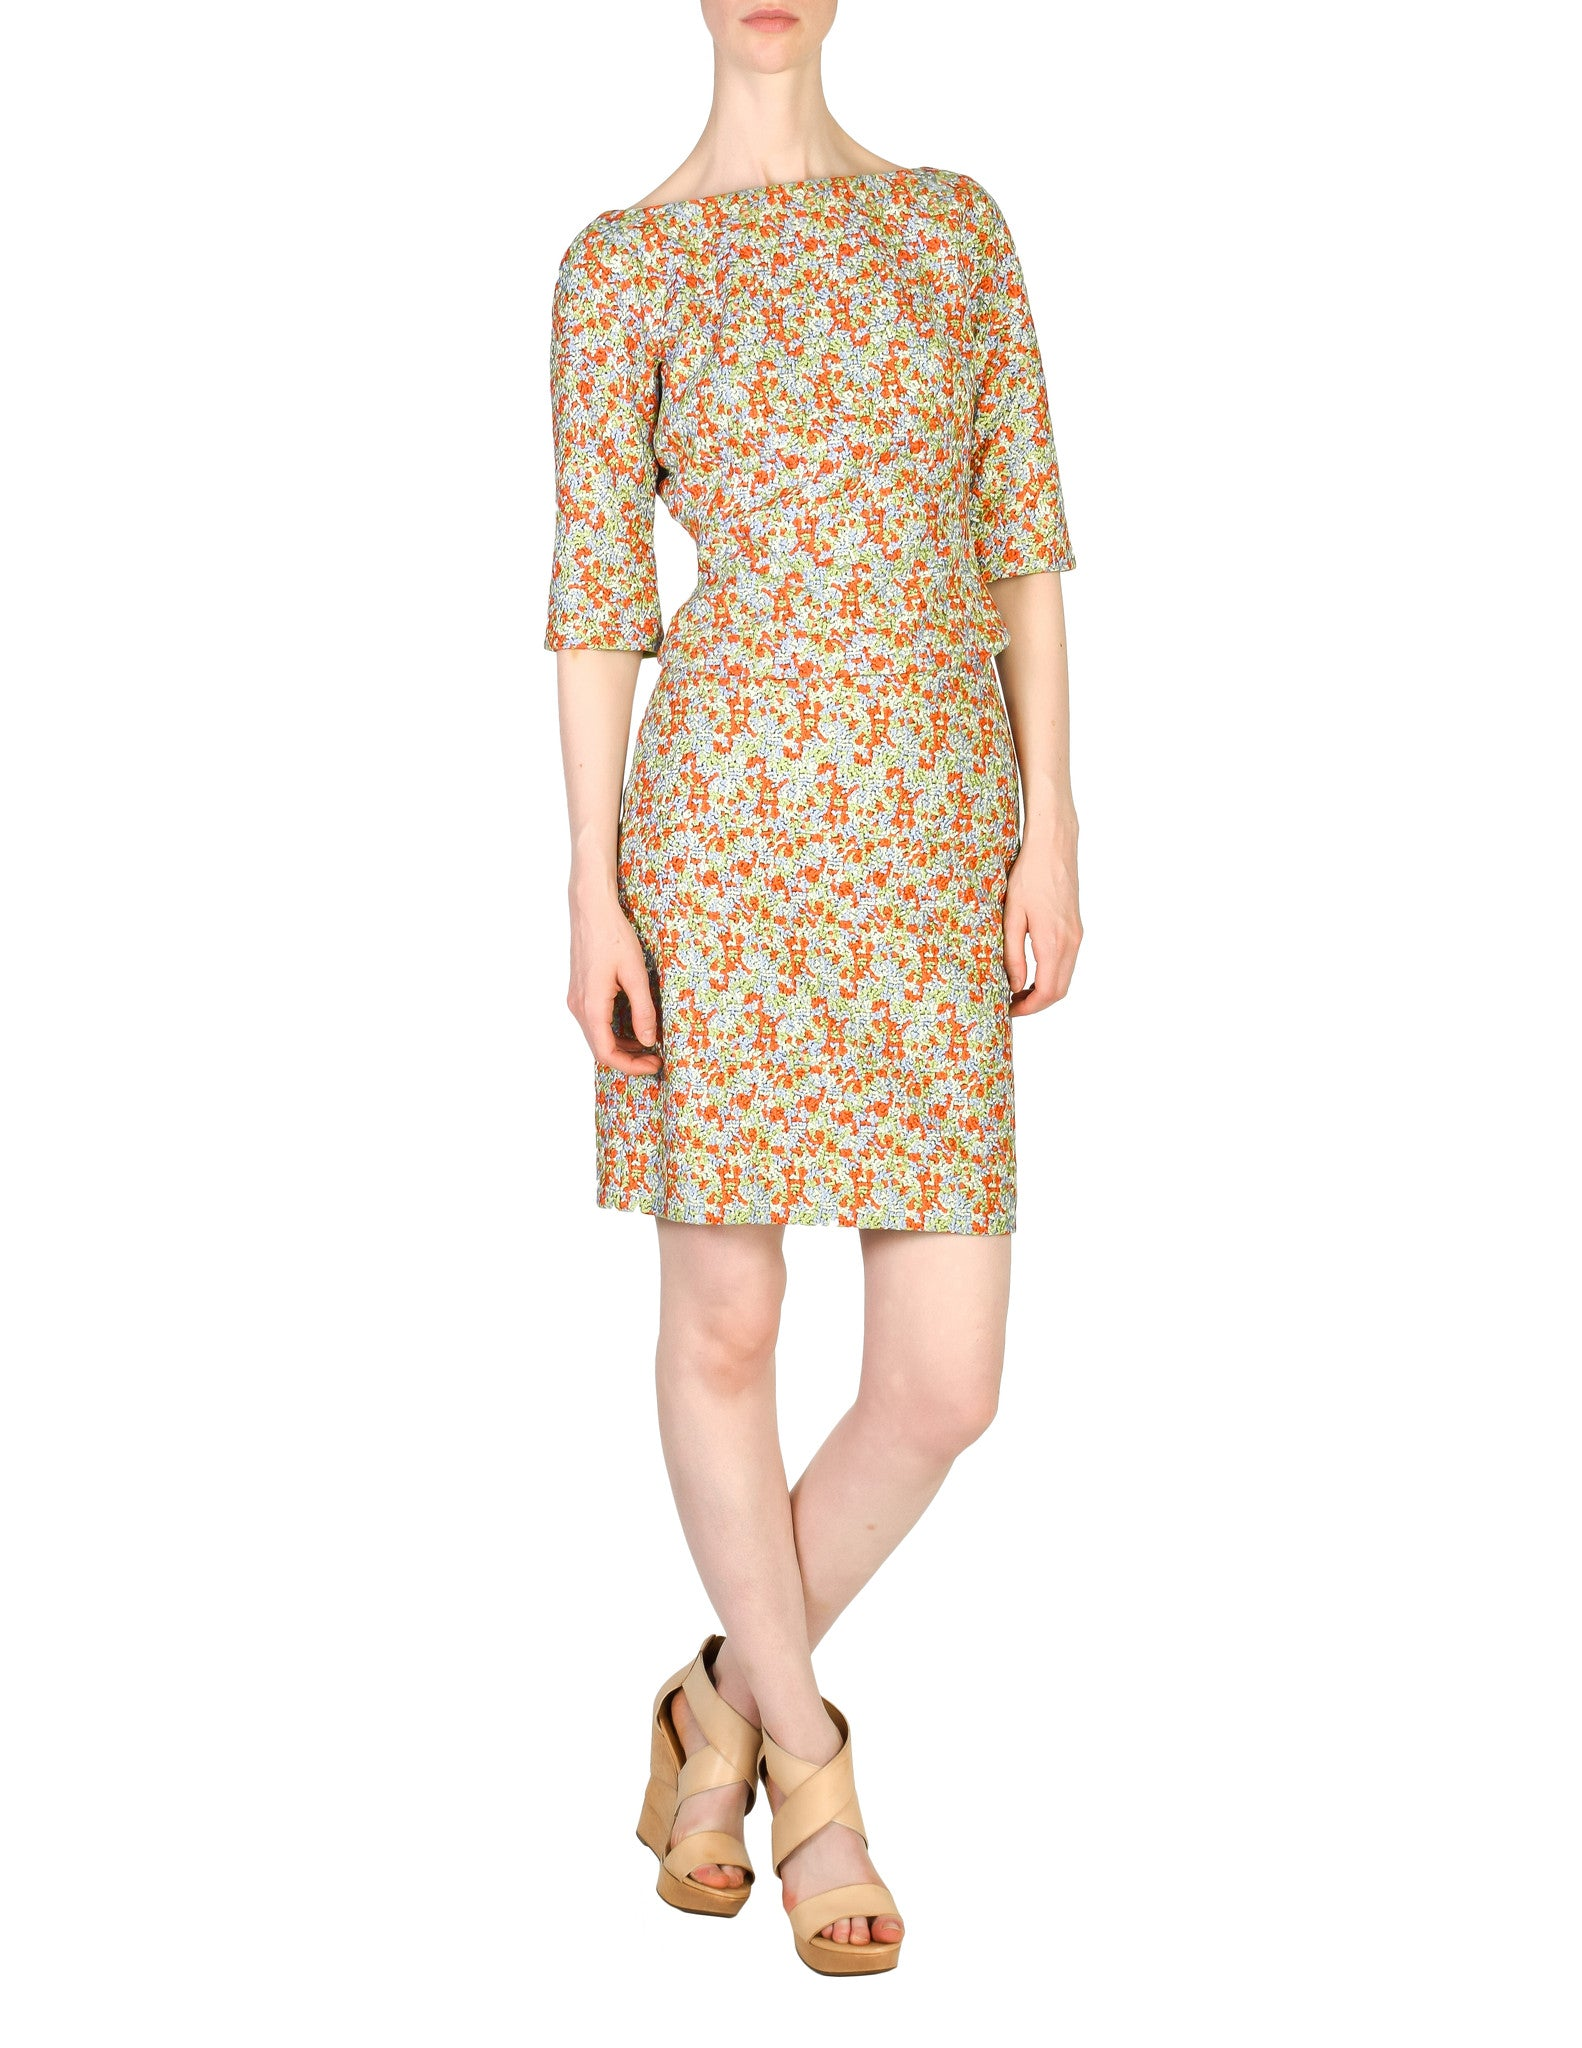 Versace Vintage Couture Multicolor Embroidered Top & Skirt Ensemble Set - Amarcord Vintage Fashion  - 1